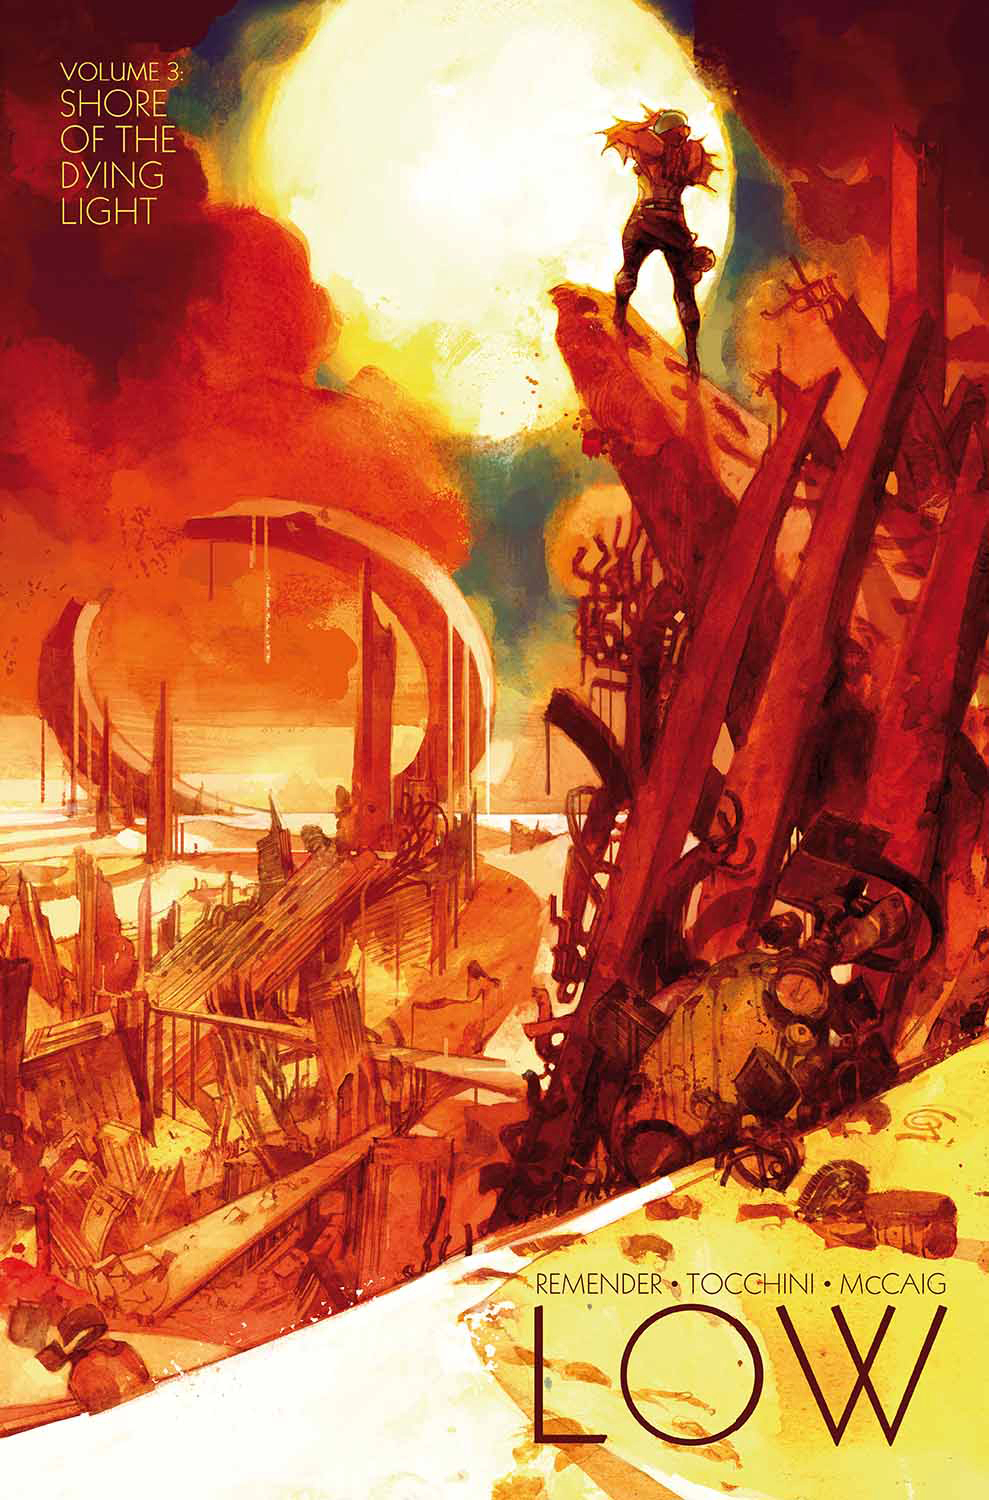 LOW TP VOL 03 SHORE OF THE DYING LIGHT (MR)